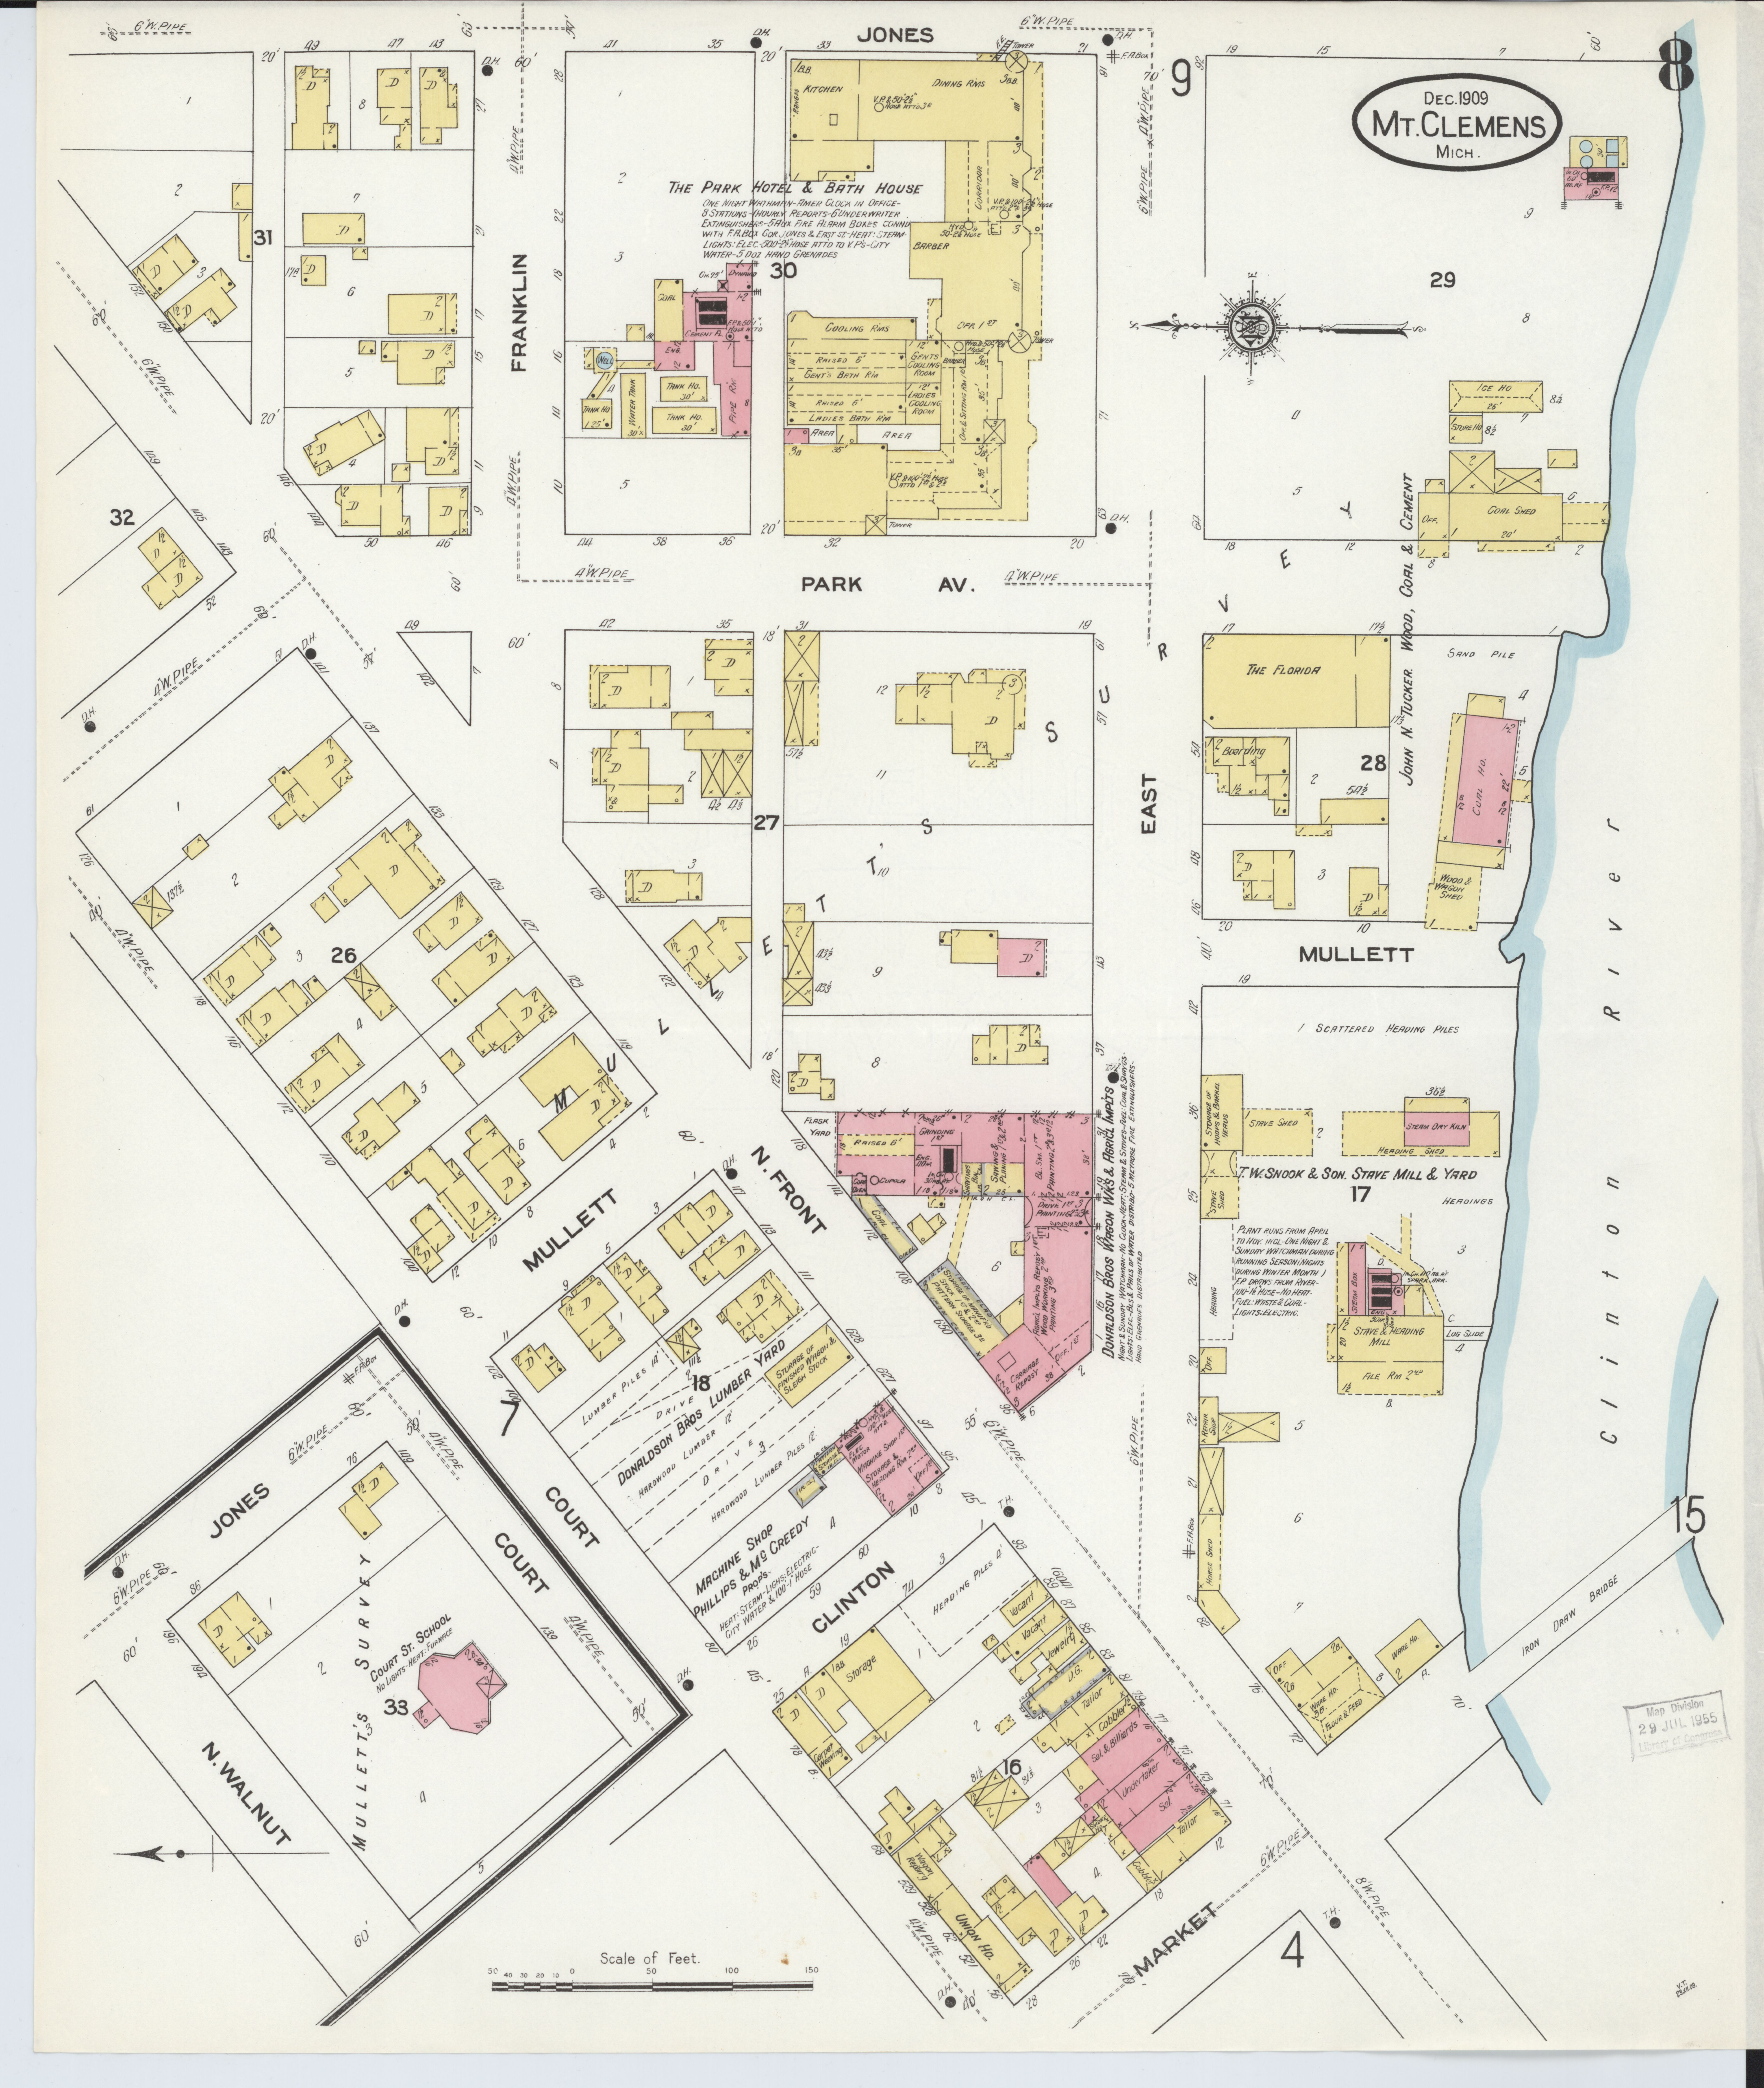 File:Sanborn Fire Insurance Map from Mount Cle, Macomb ... on wiu campus map, florida southern college campus map, oakland university mi campus map, western illinois campus map, henry ford community college campus map, mott community college campus map, south davis recreation center map, wayne state university campus map, macomb community college degree, nova cc medical campus map,